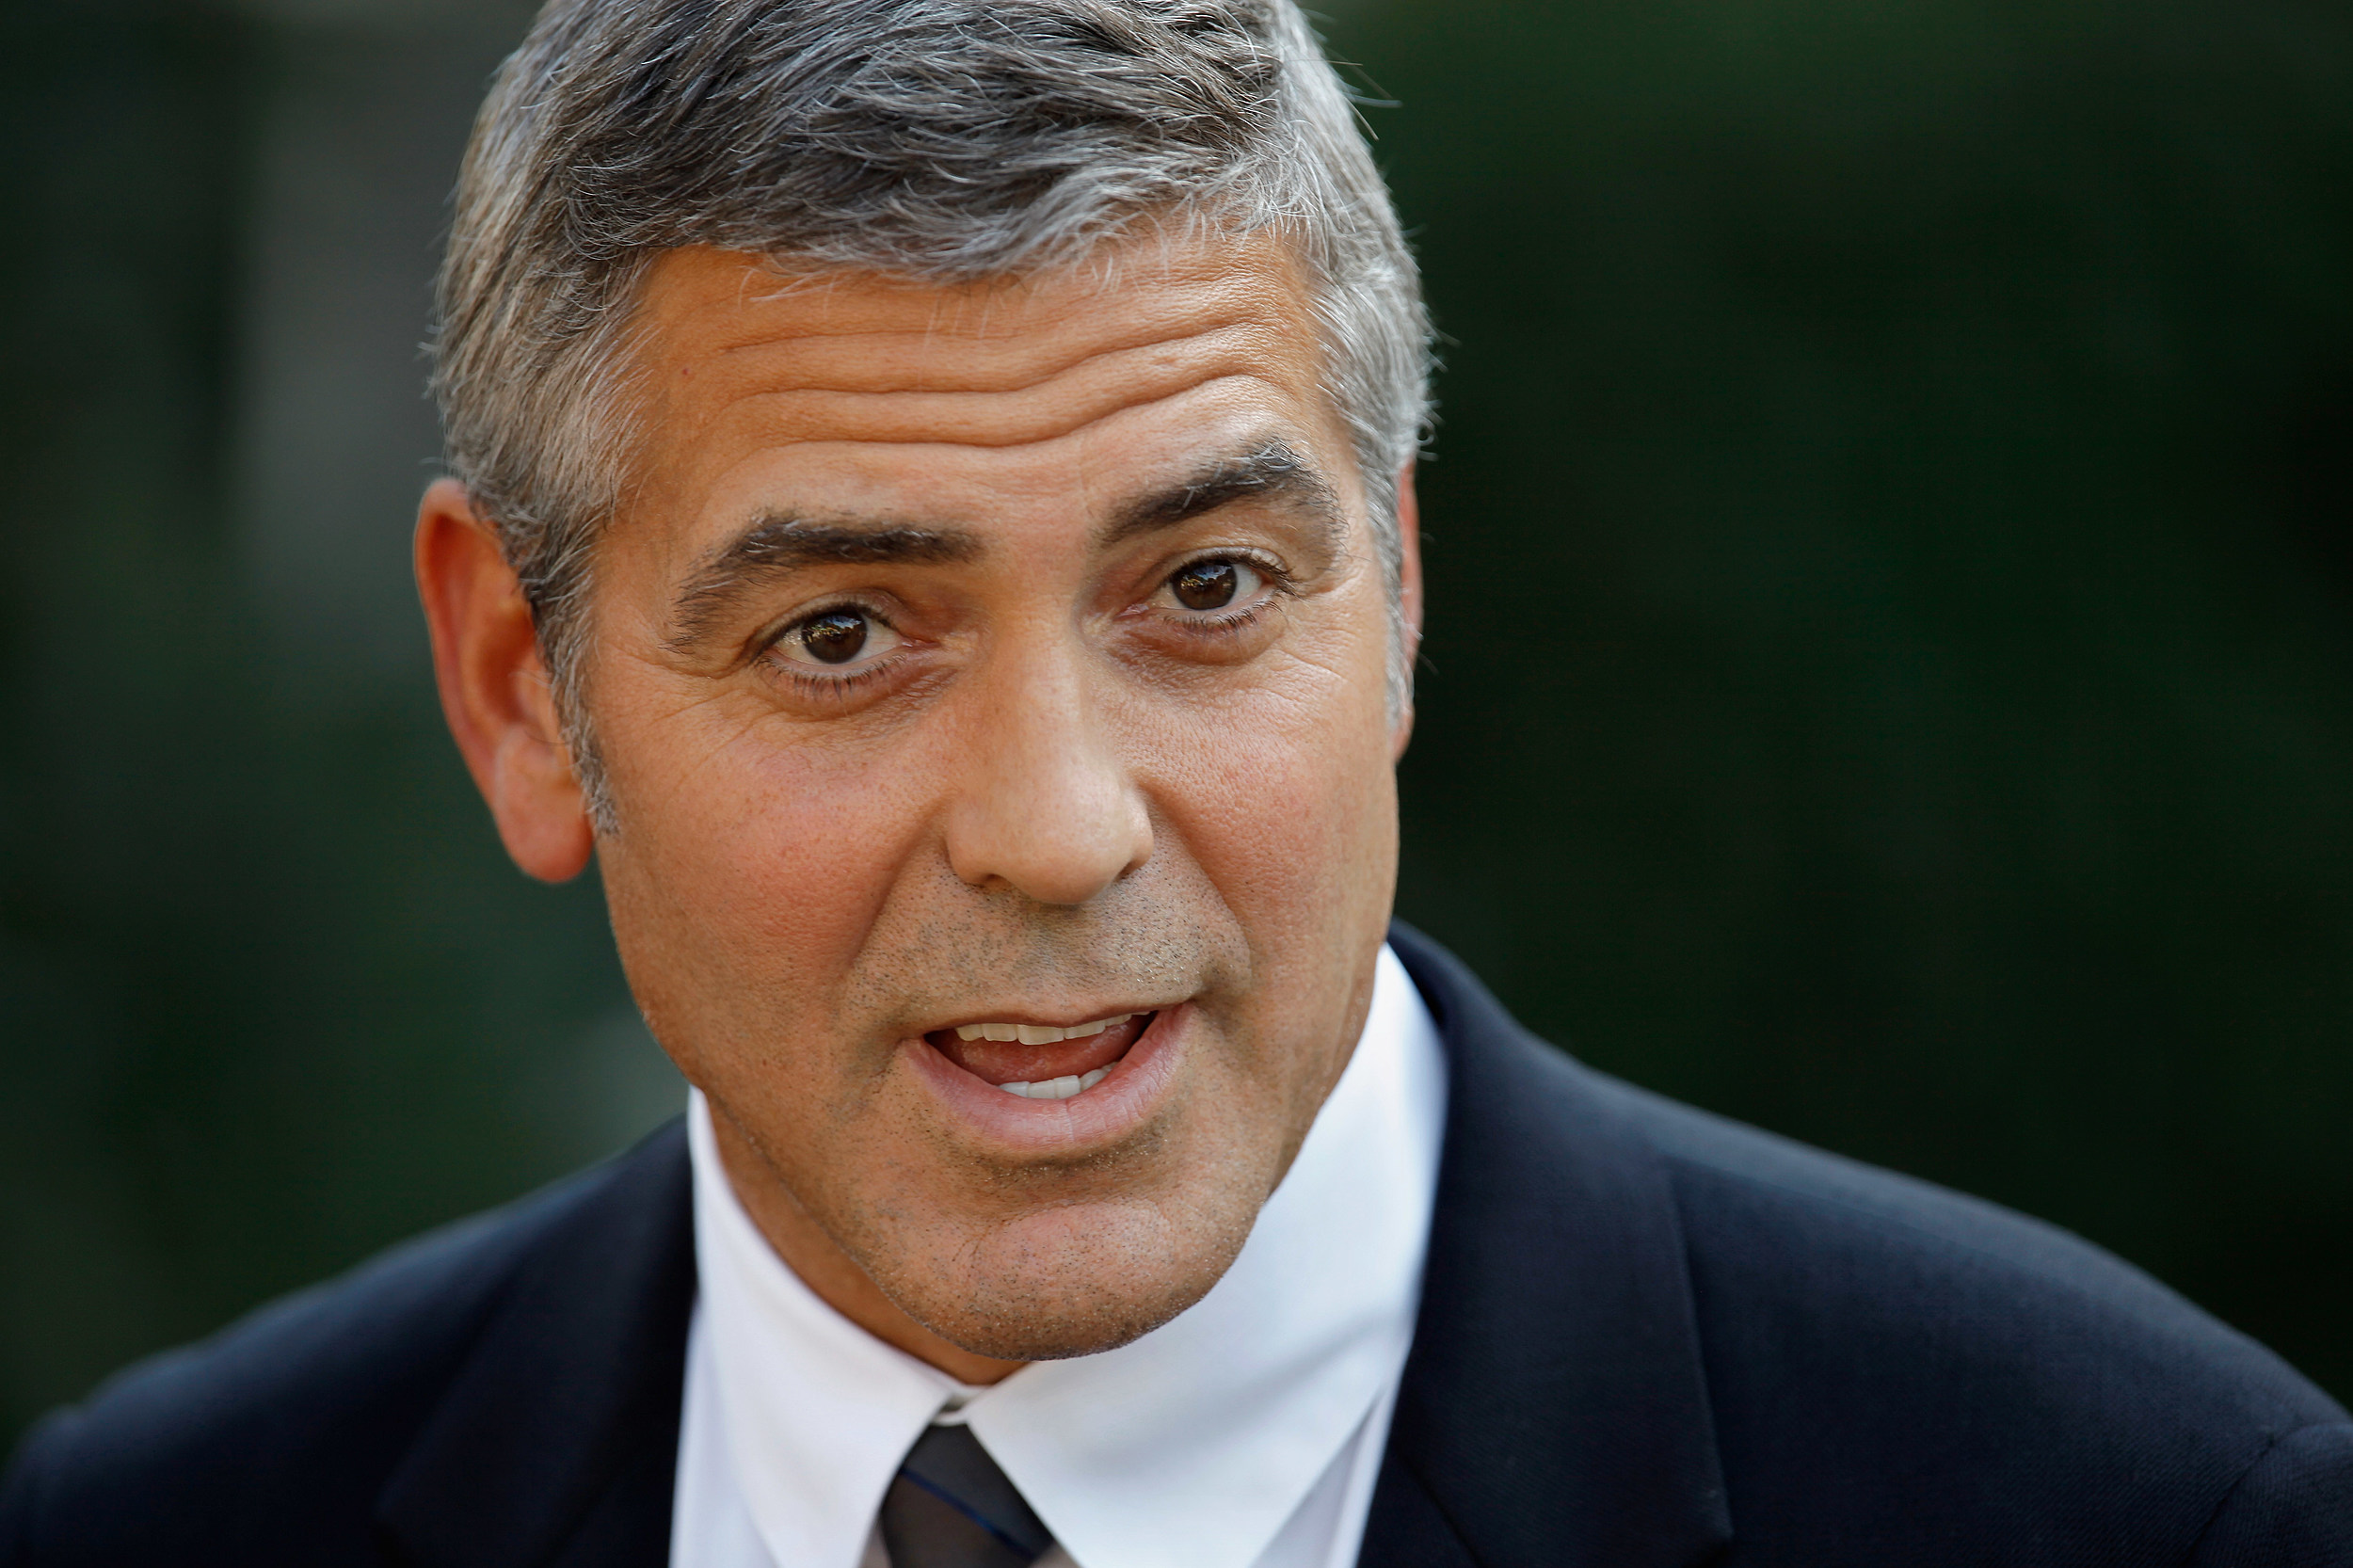 george clooney2 ... run about having sex with dead people was certainly an attention getter.